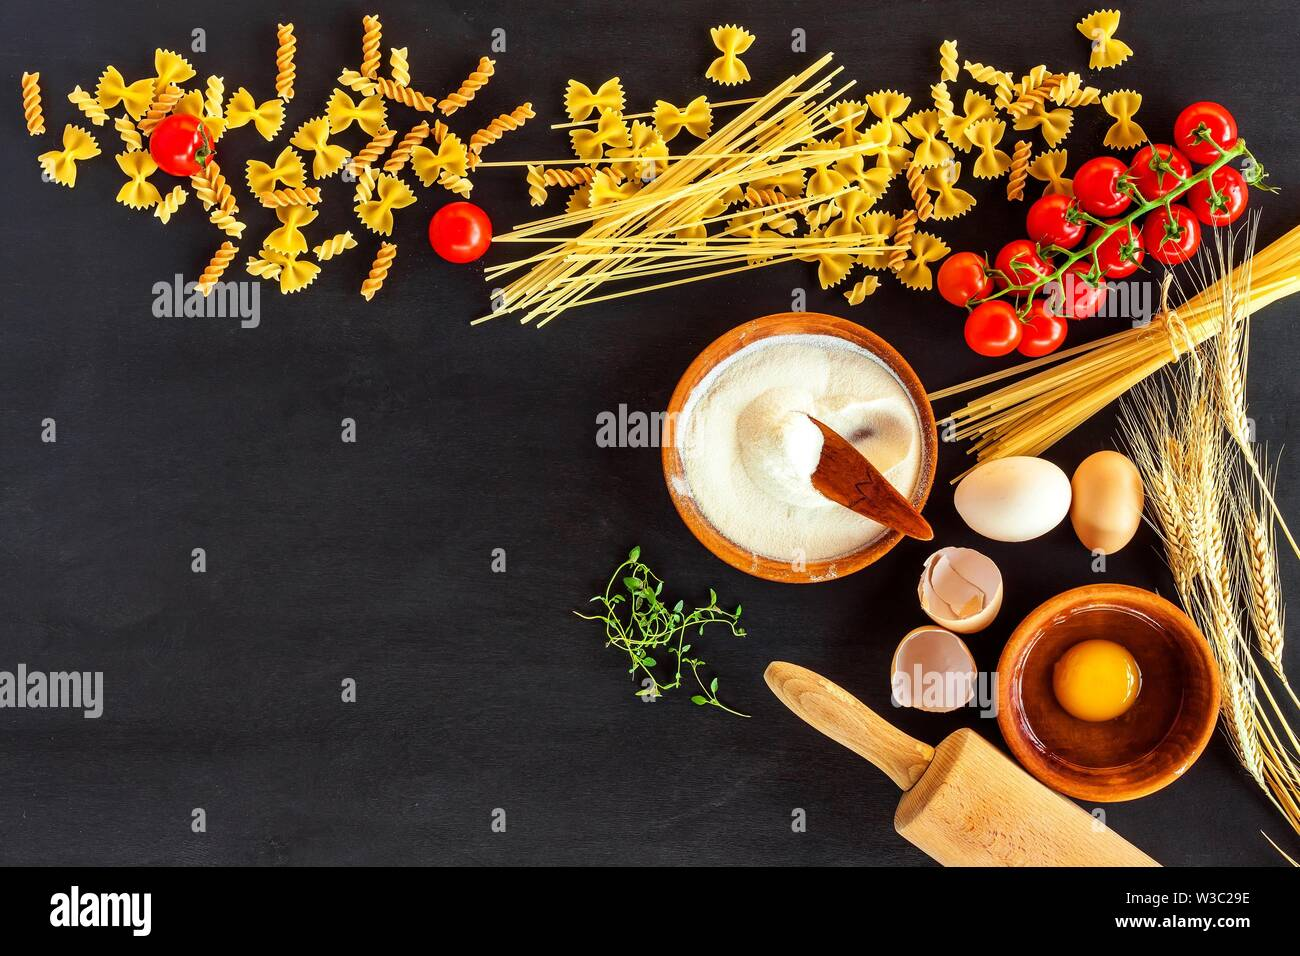 Home made traditional pasta. Flour grain egg pasta on black background. Home cooking food. - Stock Image